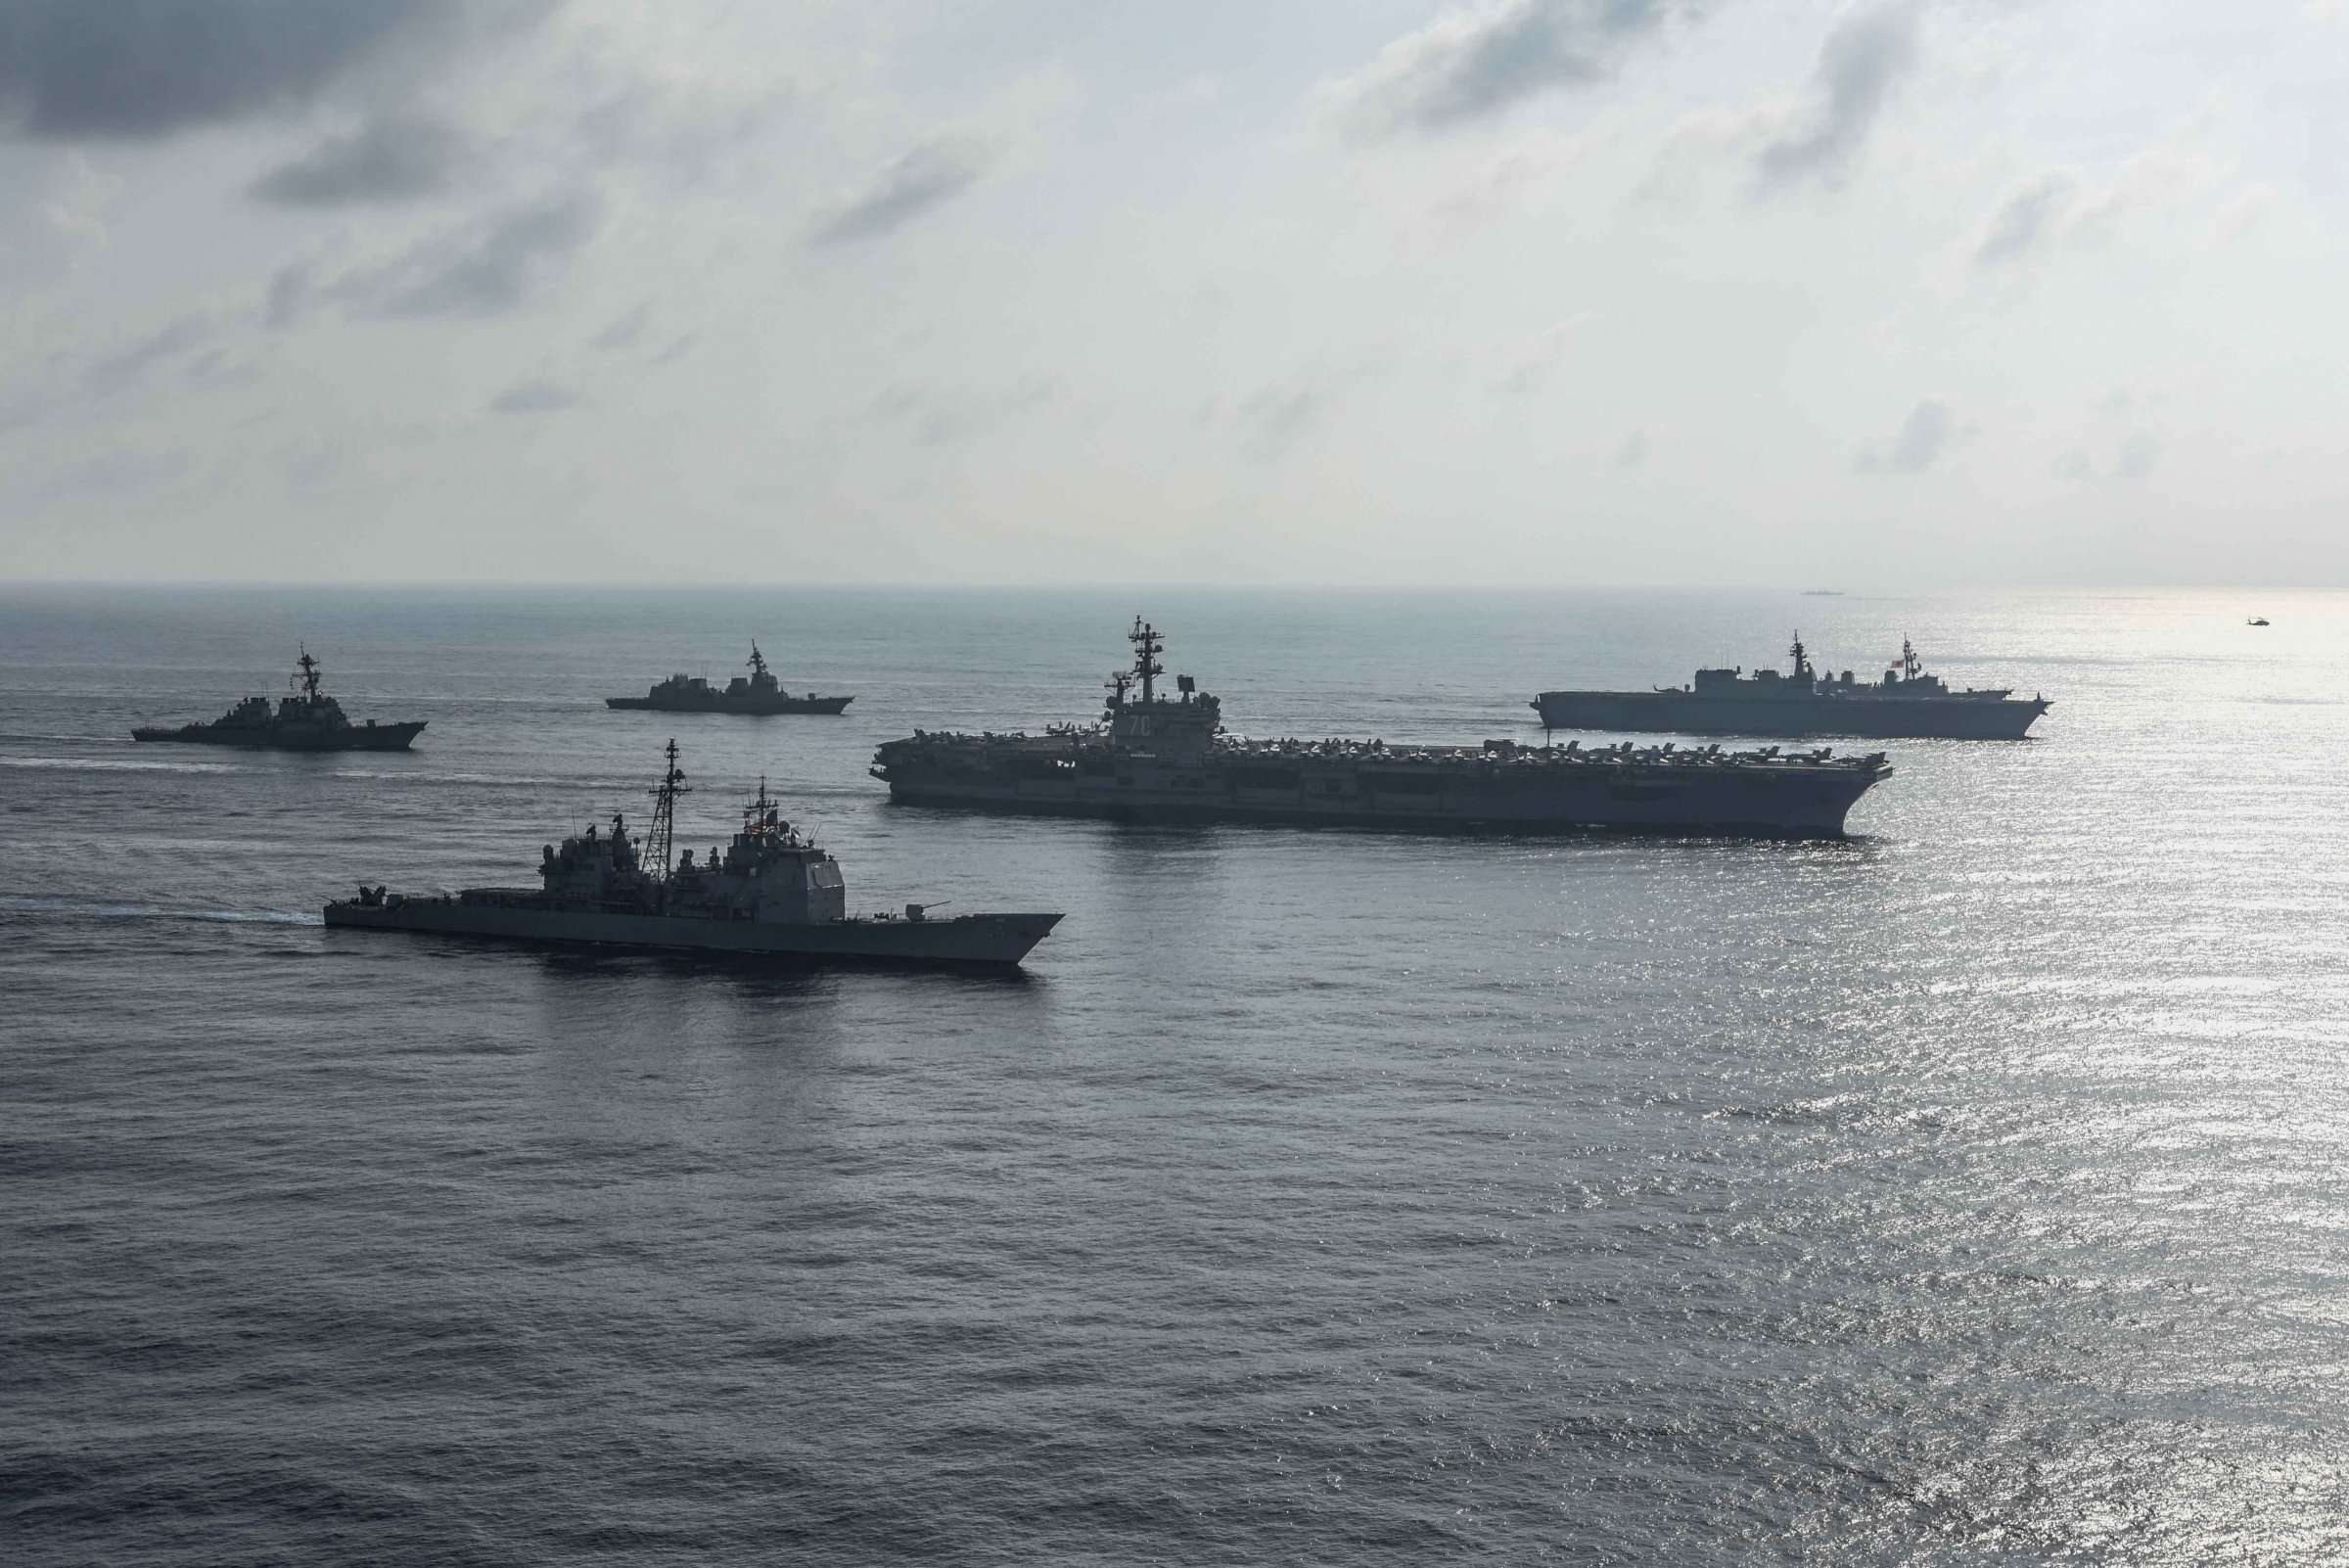 The Ronald Reagan Strike Group ship's aircraft carrier USS Ronald Reagan conduct an exercise with the Japanese Maritime Self-Defense Force ships